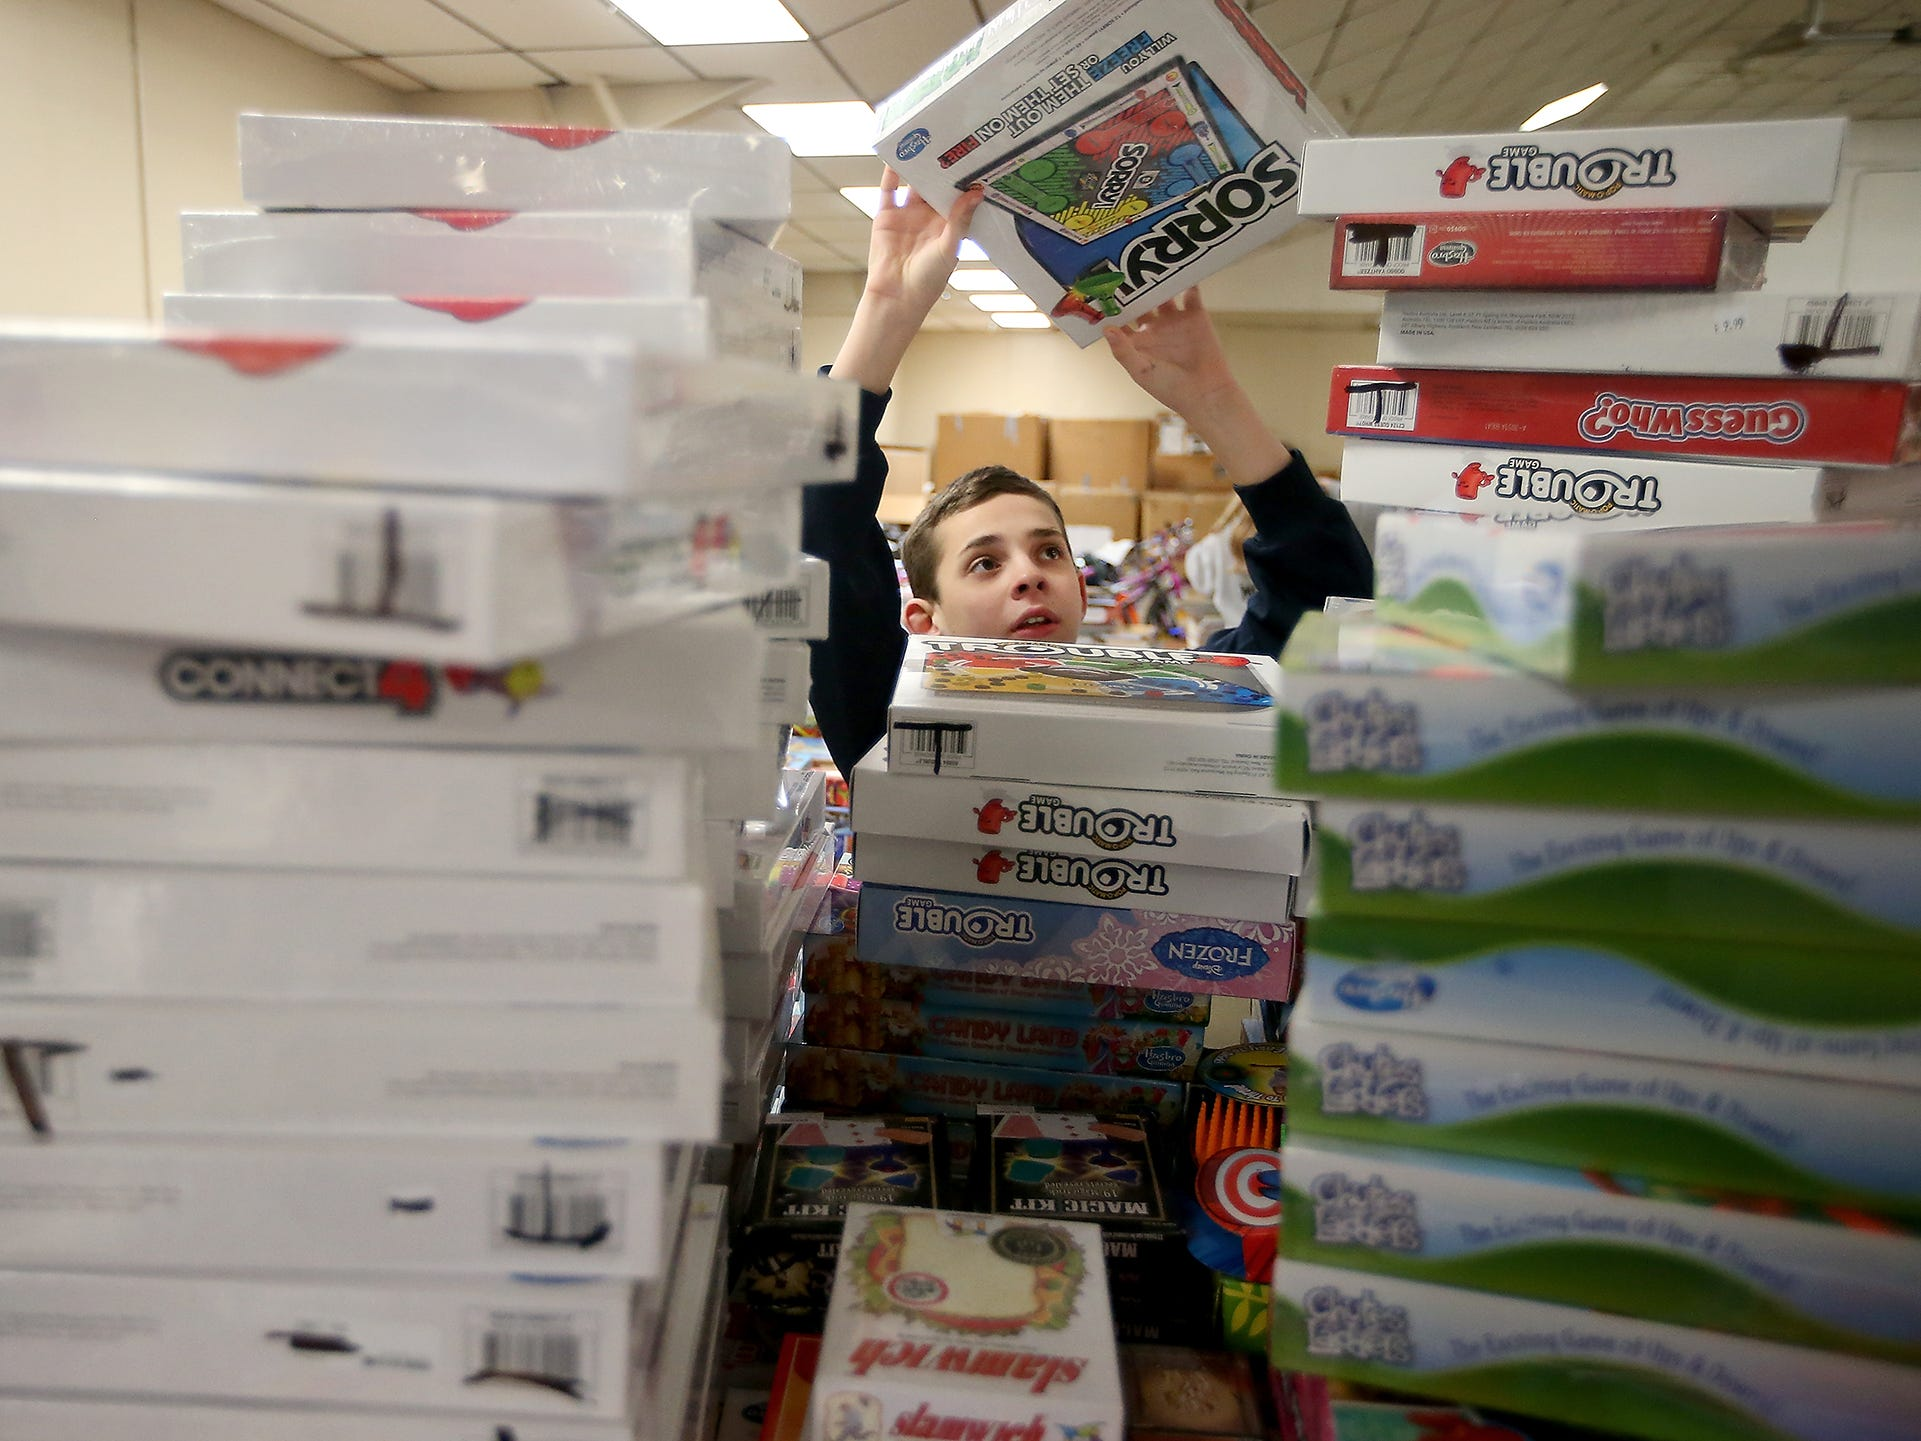 Volunteer Levi Bellon, 11, stacks board games as he helps set up for the upcoming Toys For Tots event in President's Hall at the Kitsap County Fairgrounds on Tuesday, December 11, 2018.